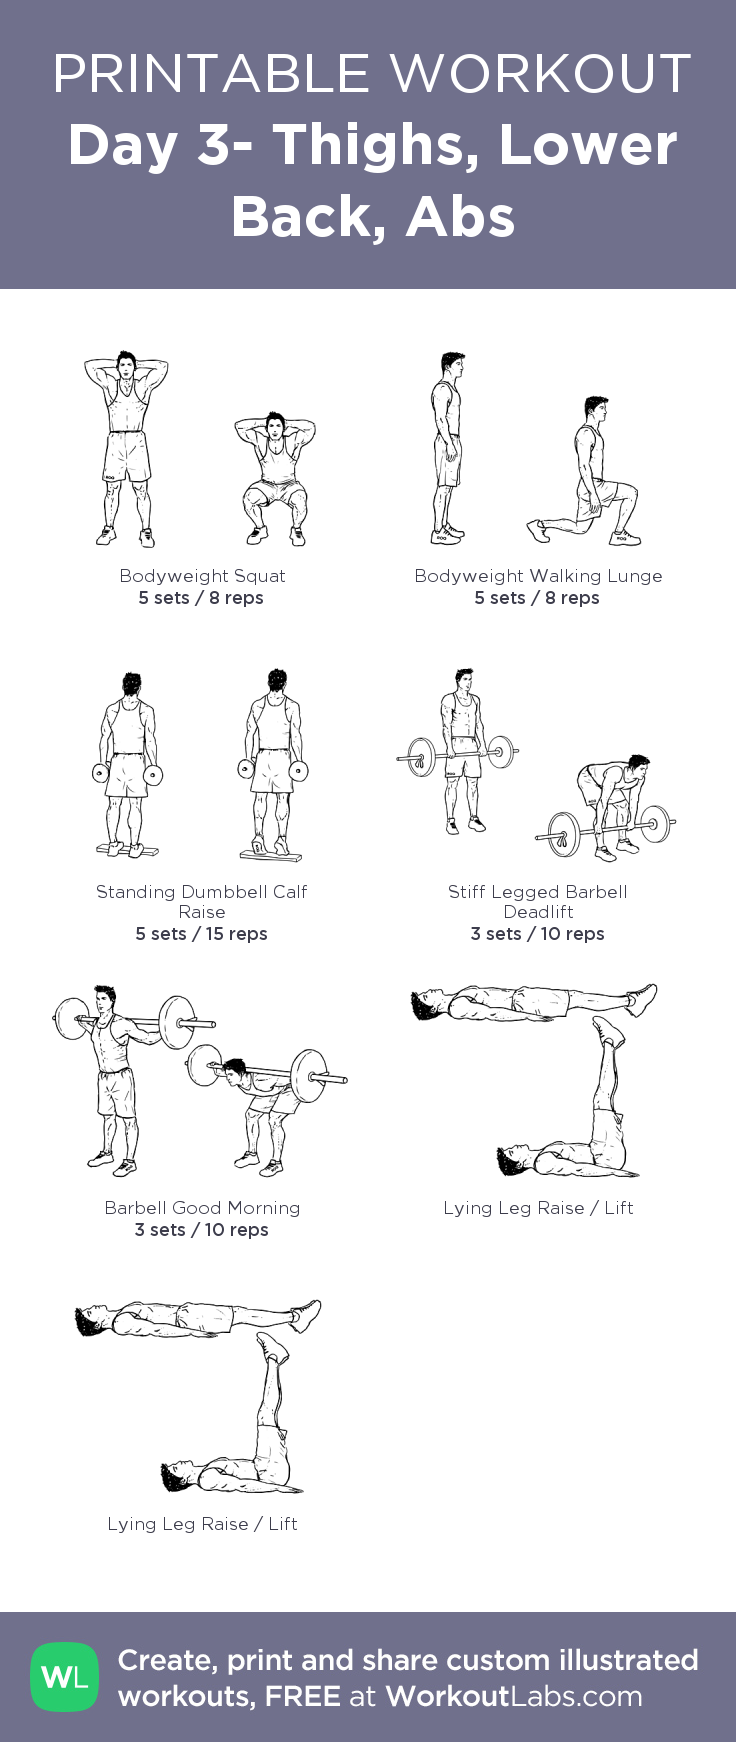 Day 3 Thighs Lower Back Abs